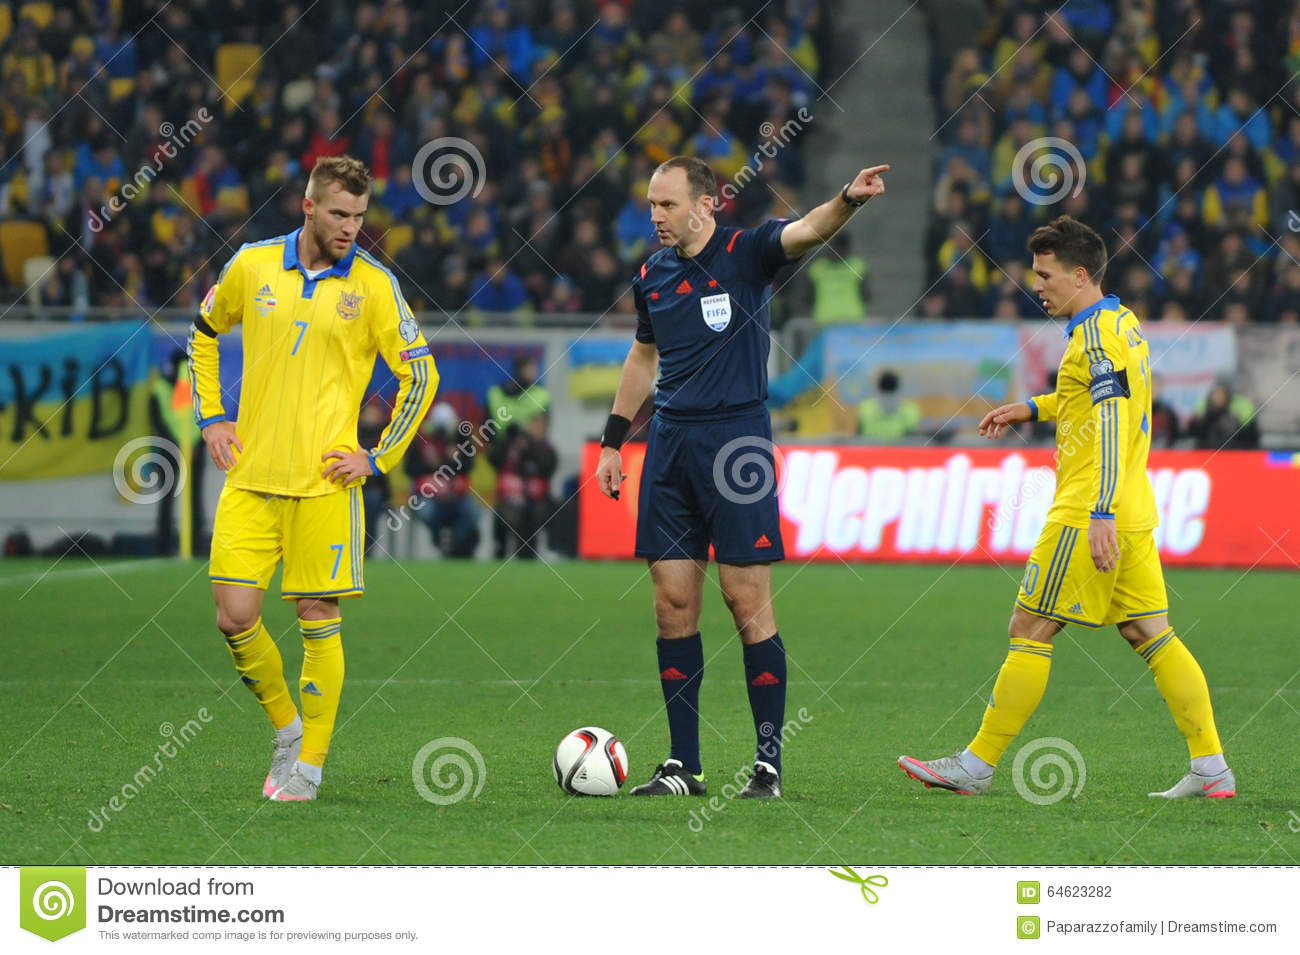 slovenia ukraine match Friendly international 2018 results, tables, fixtures, and other stats for friendly international 2018 compare teams, find the best odds and browse through archive stats up to 7 years back.